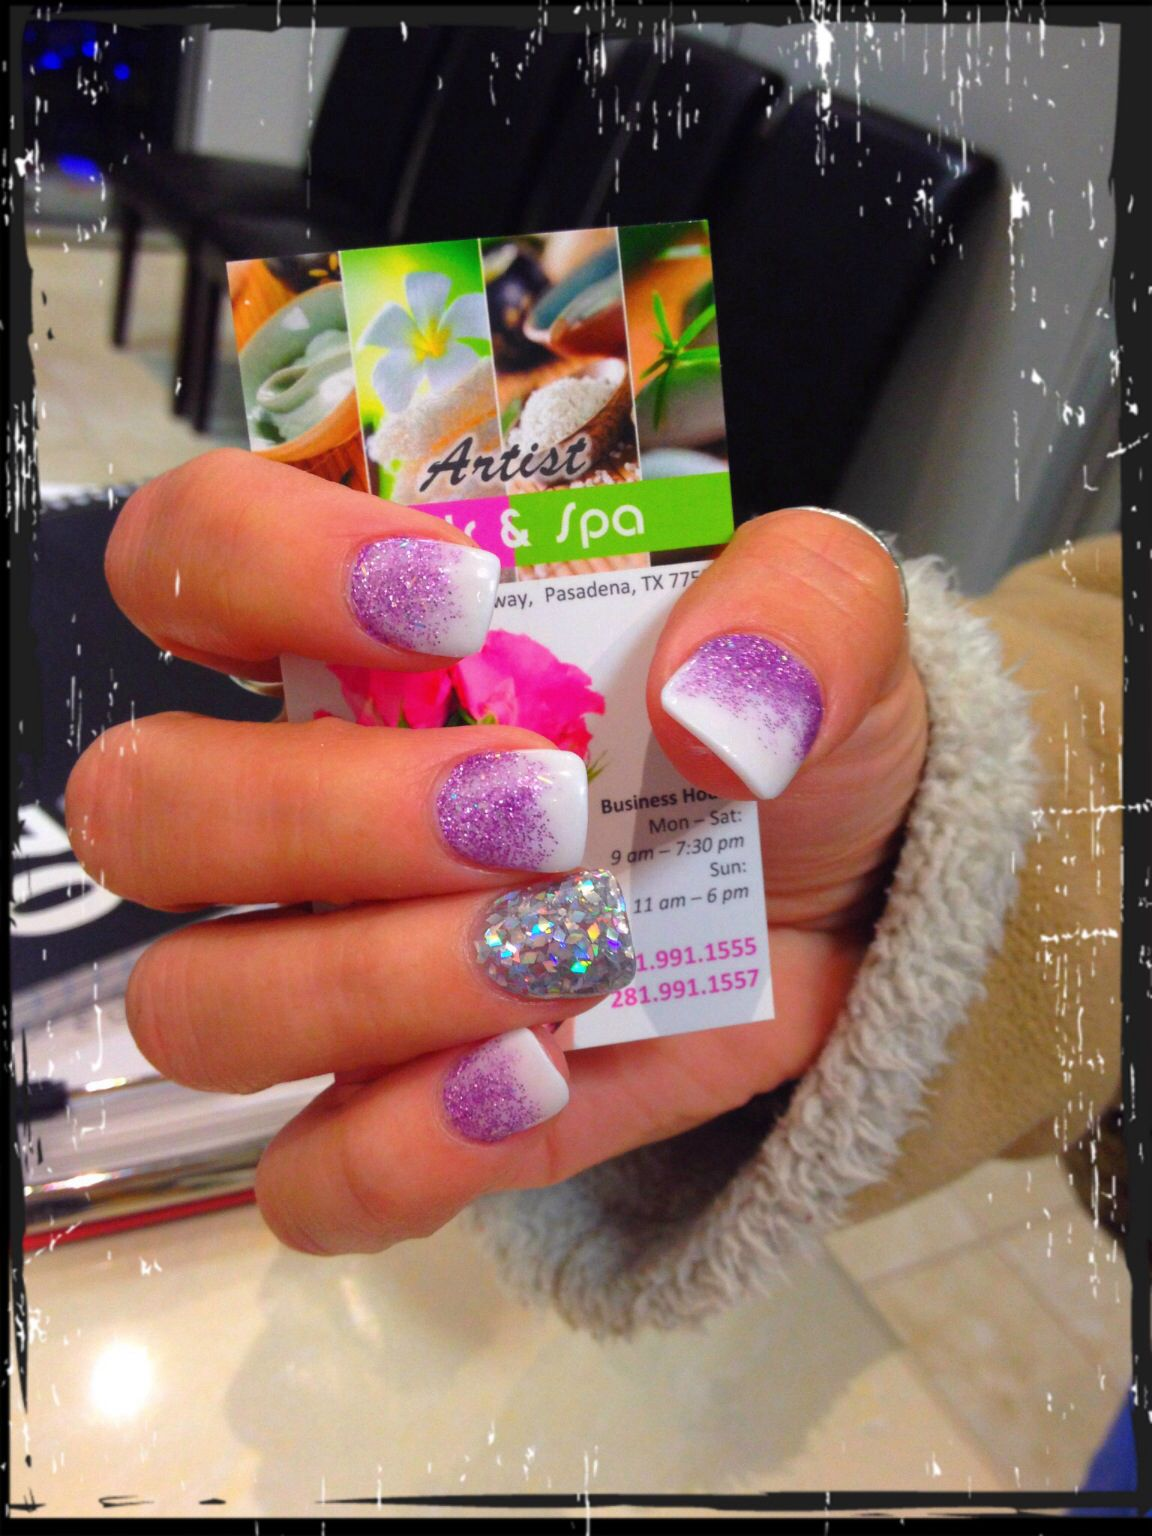 White and purple glitter ombré | ARTIST NAILS AND SPA | Pinterest ...